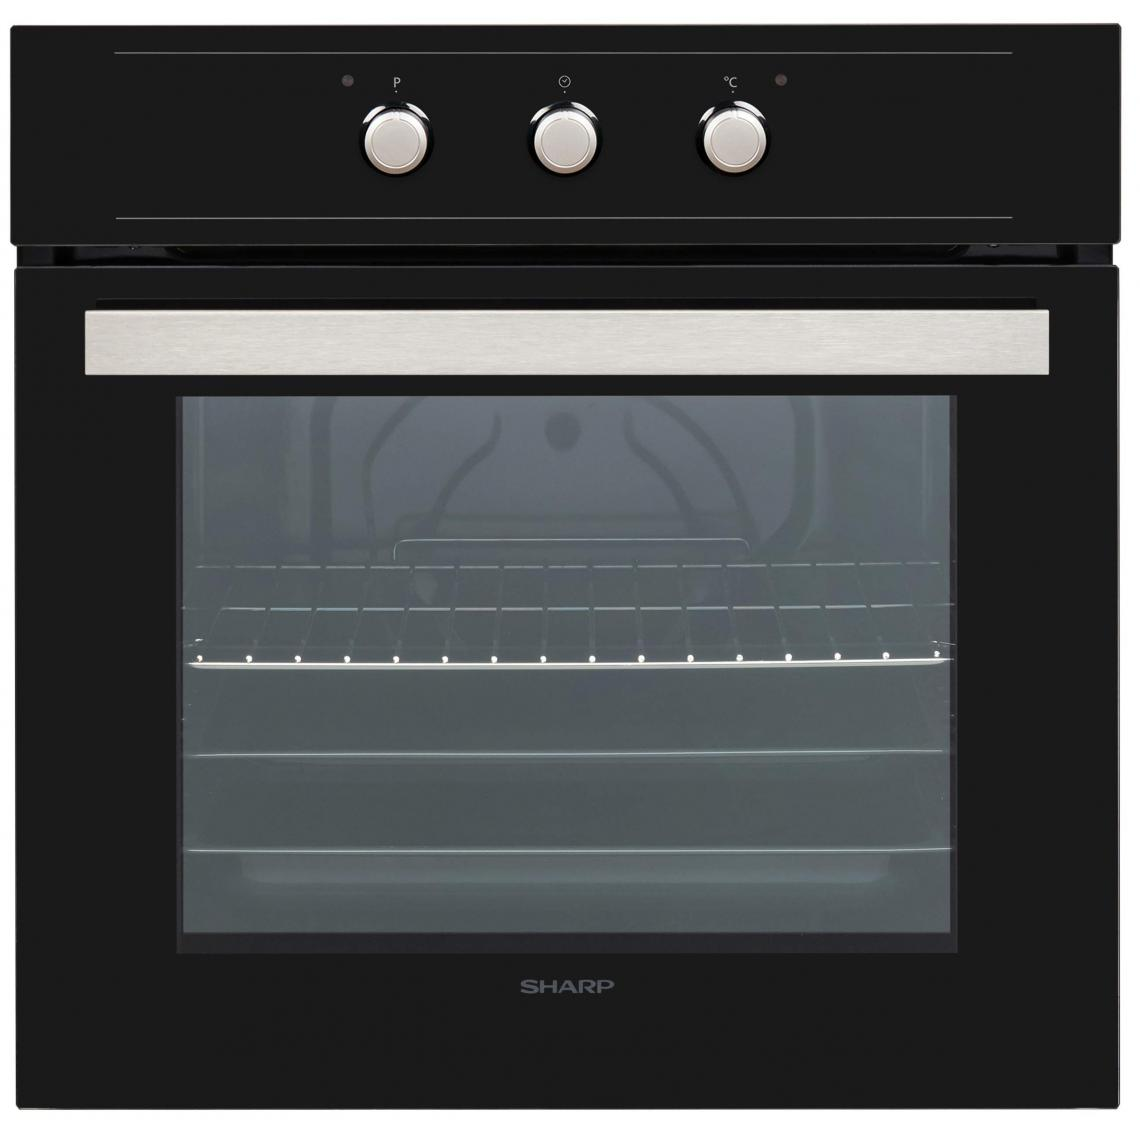 Sharp Four encastrable Convection naturelle 72L SHARP 3100W 60cm A, K 60 M 15 BL 2